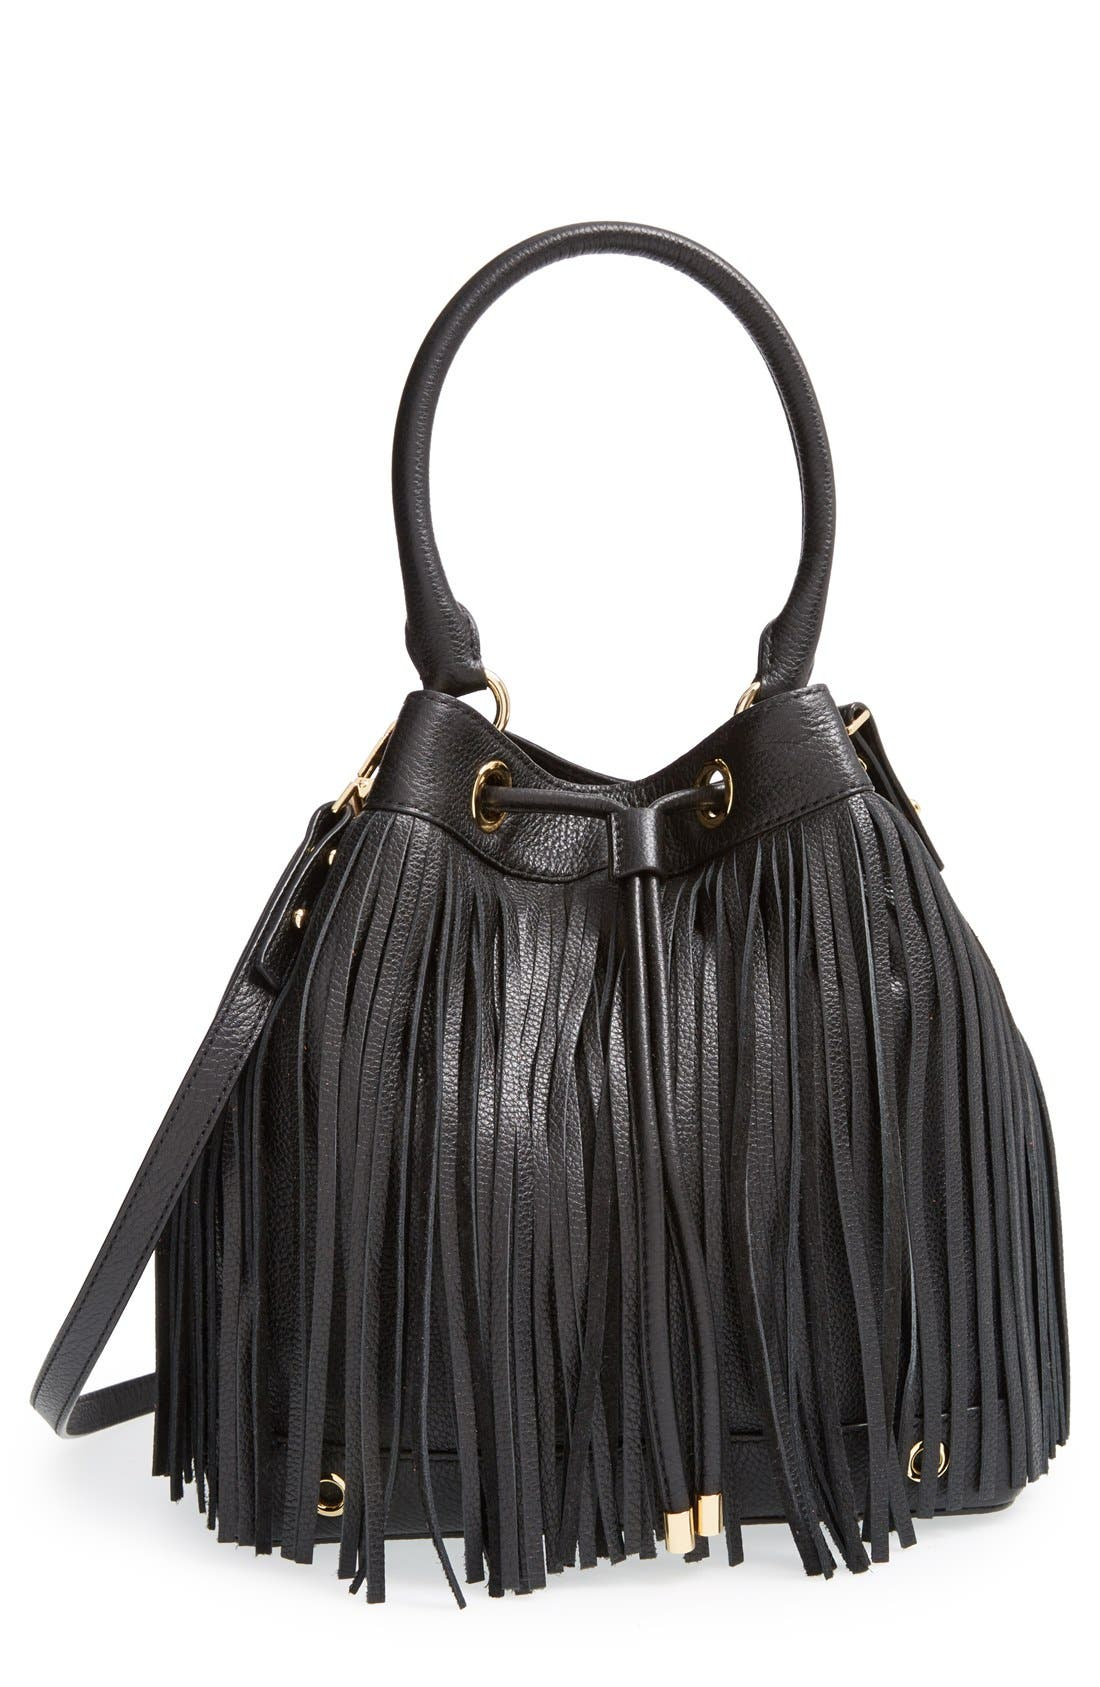 MILLY 'Essex' Fringed Leather Bucket Bag, Main, color, 001